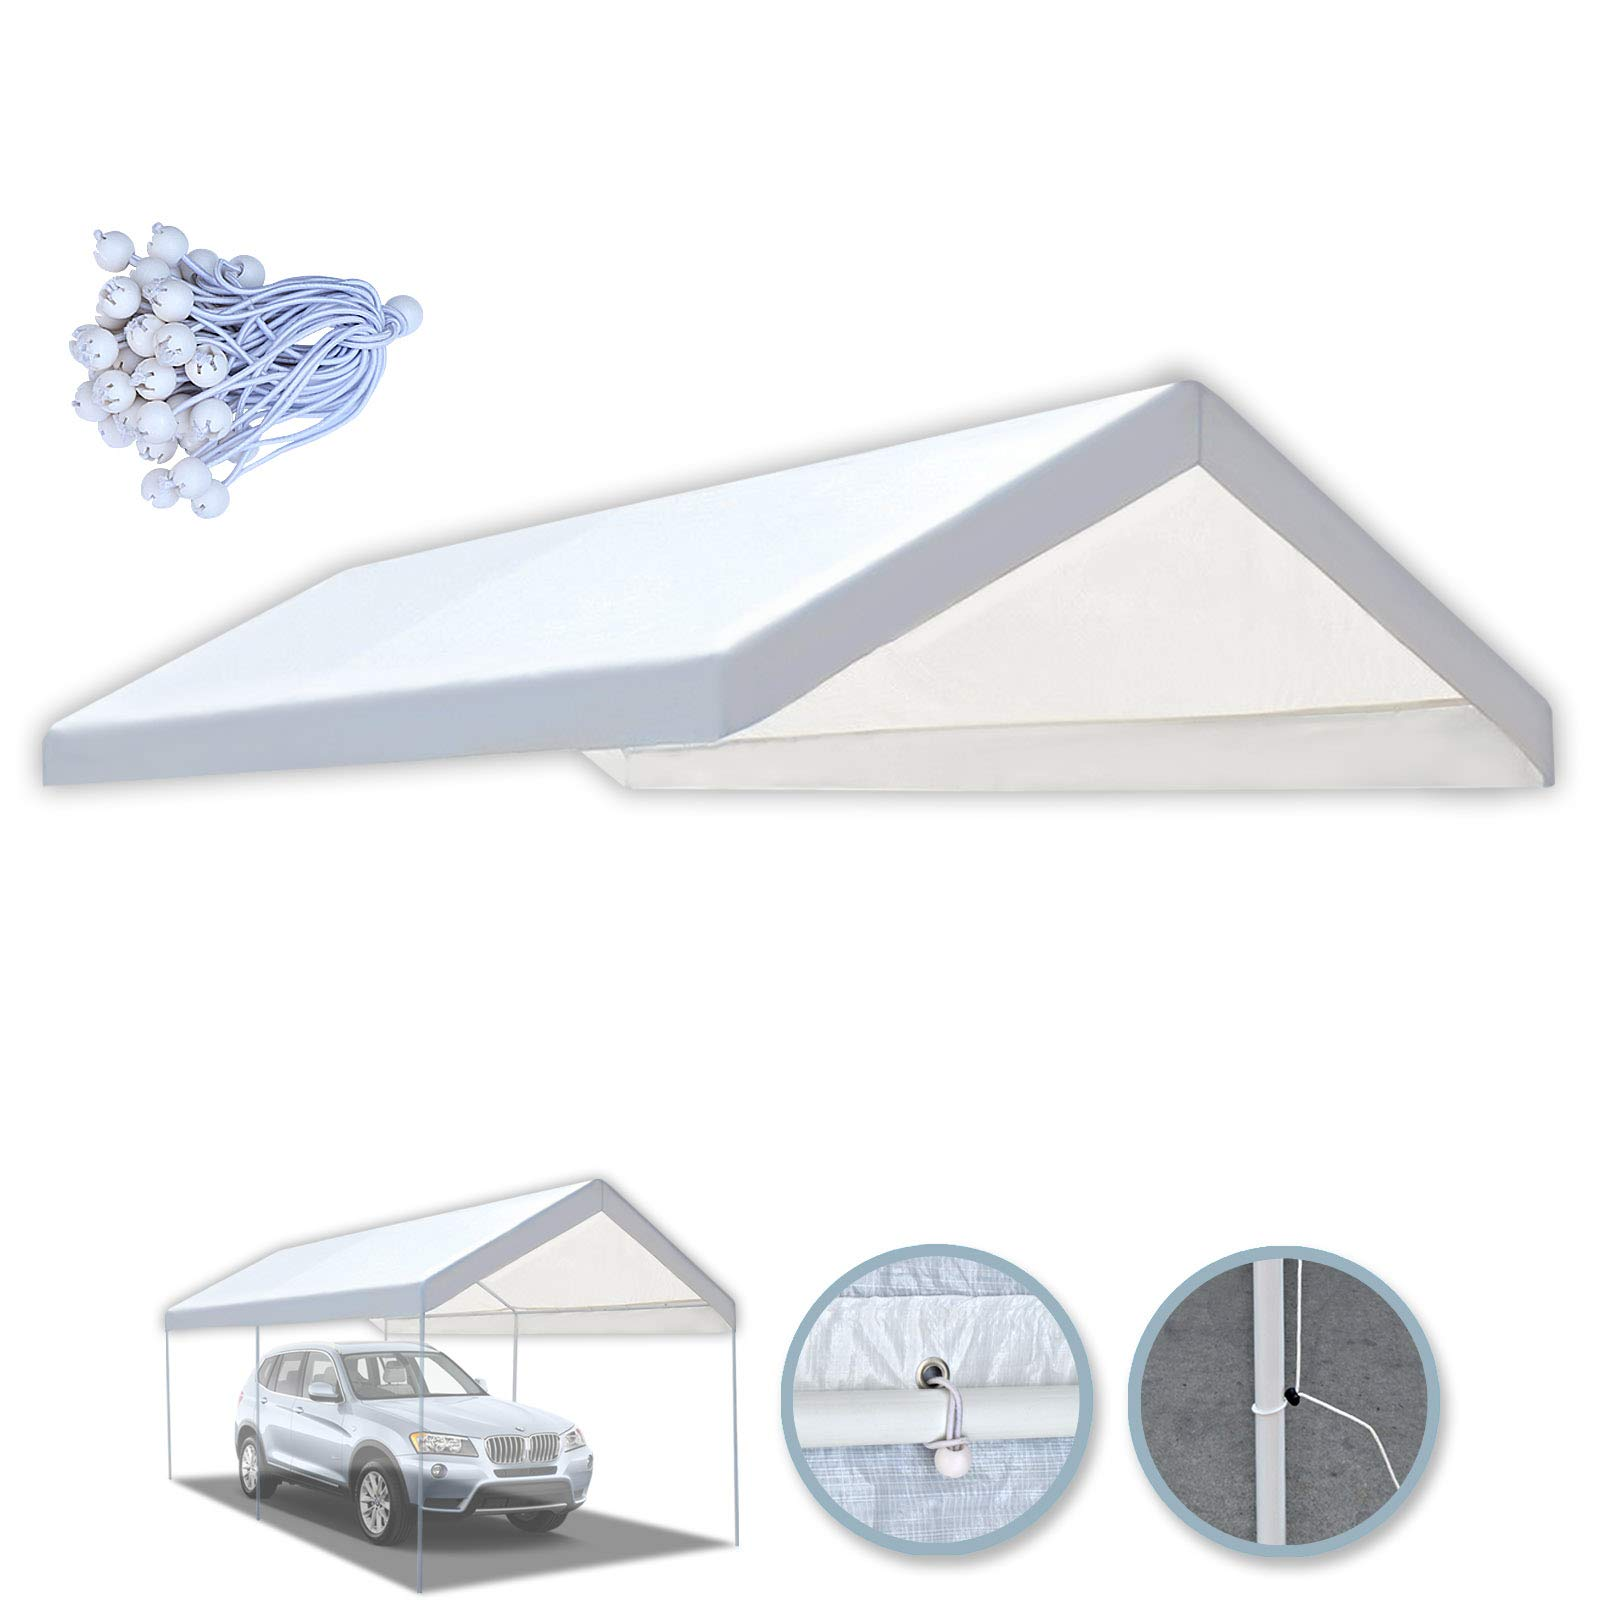 BenefitUSA 10x20 Carport Replacement Canopy Tent Garage Top Tarp Shelter Cover w Ball Bungees (with Edge) by Benefit